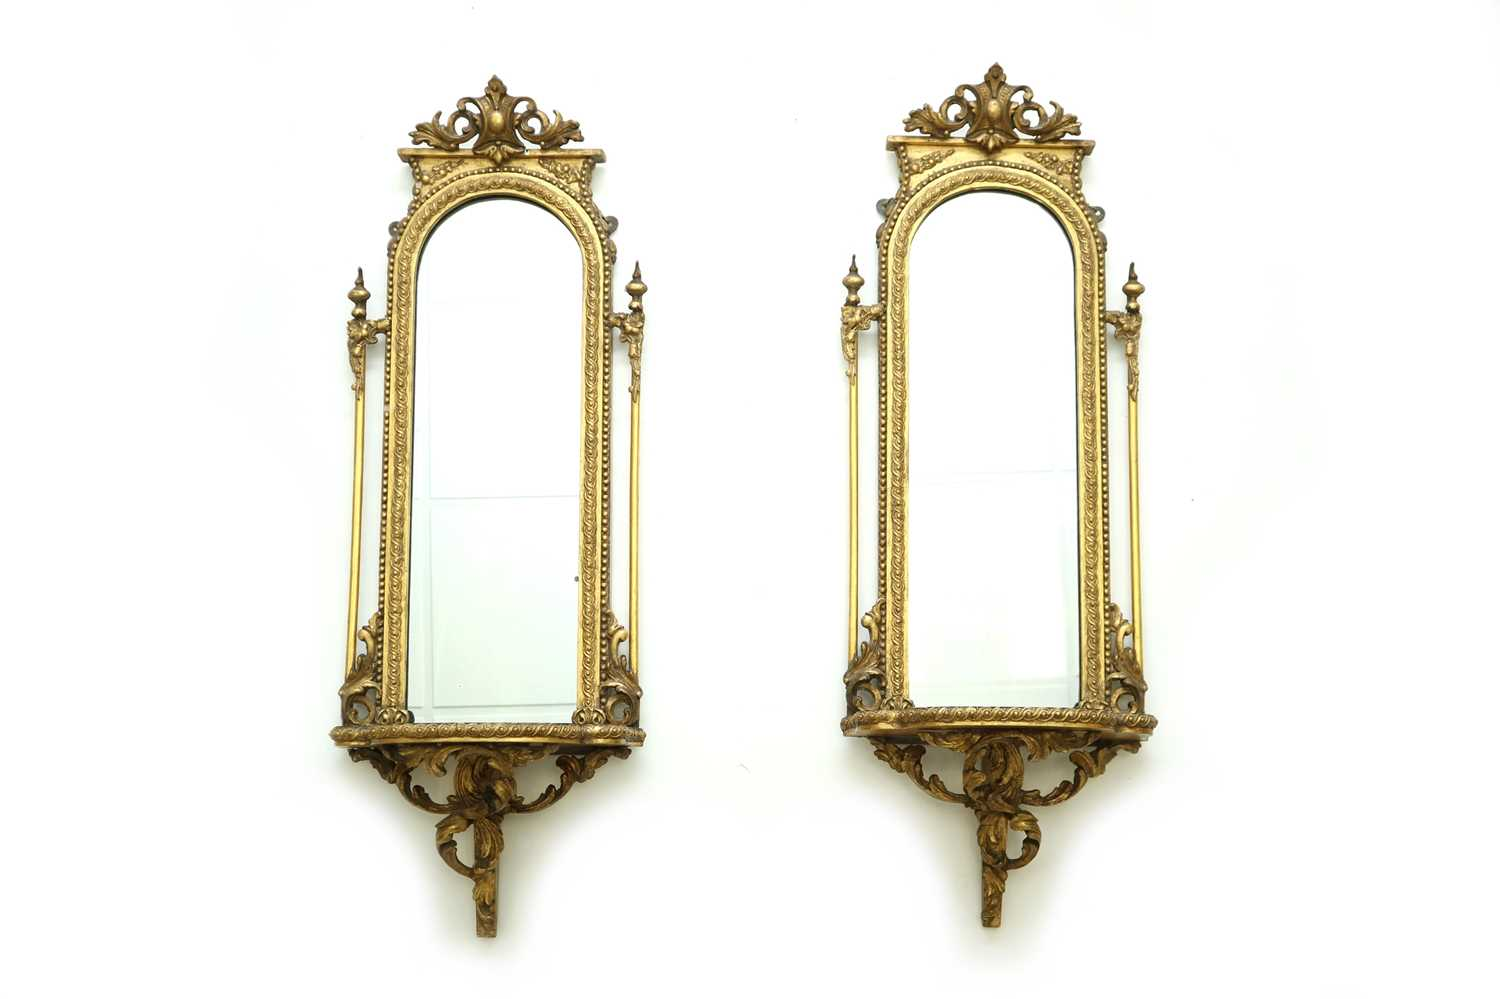 441 - A pair of Victroian giltwood mirrors, second half 19th century